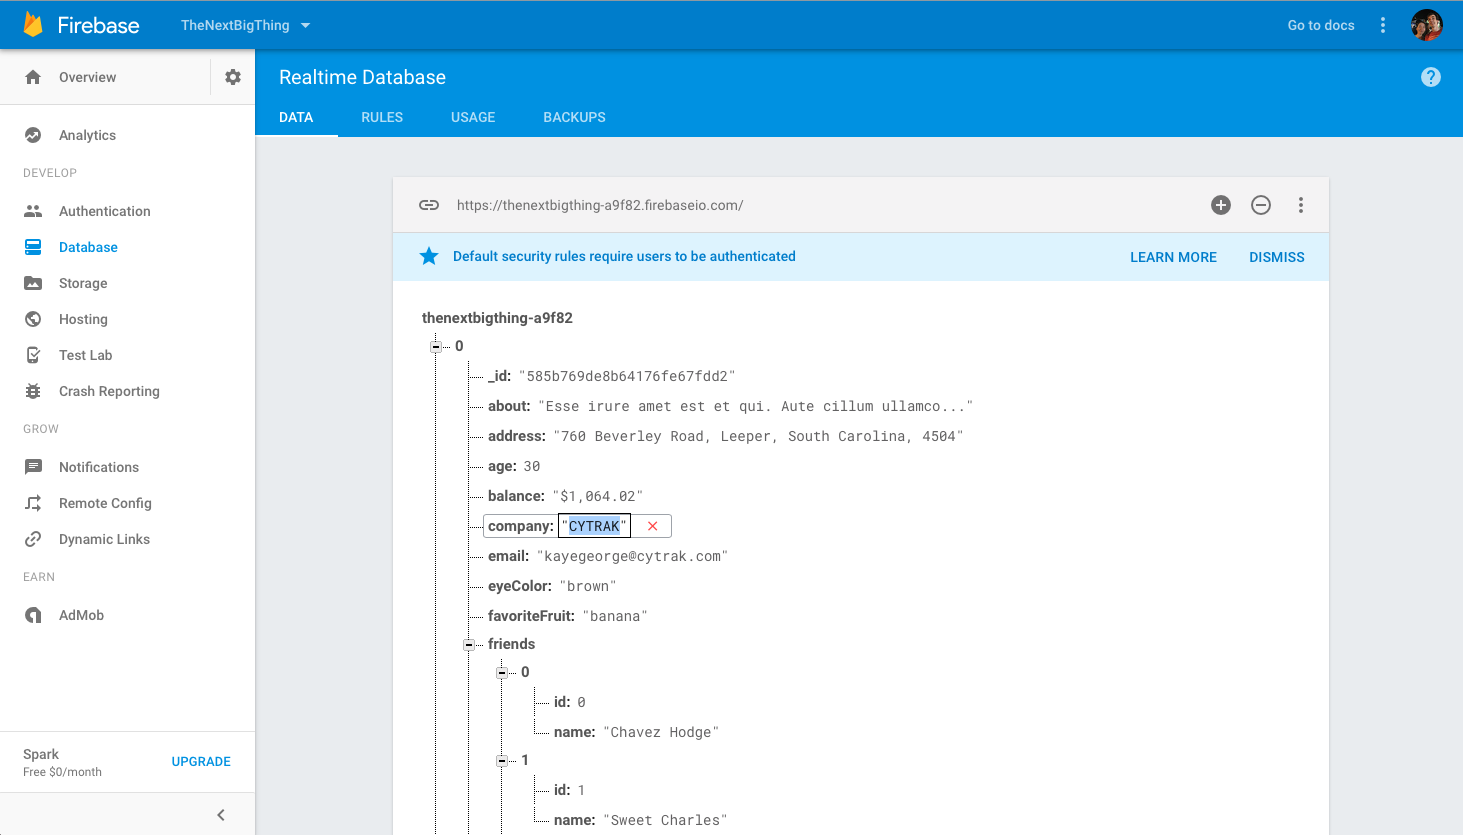 Firebase / Firestore - Features, Pricing, Alternatives, and More